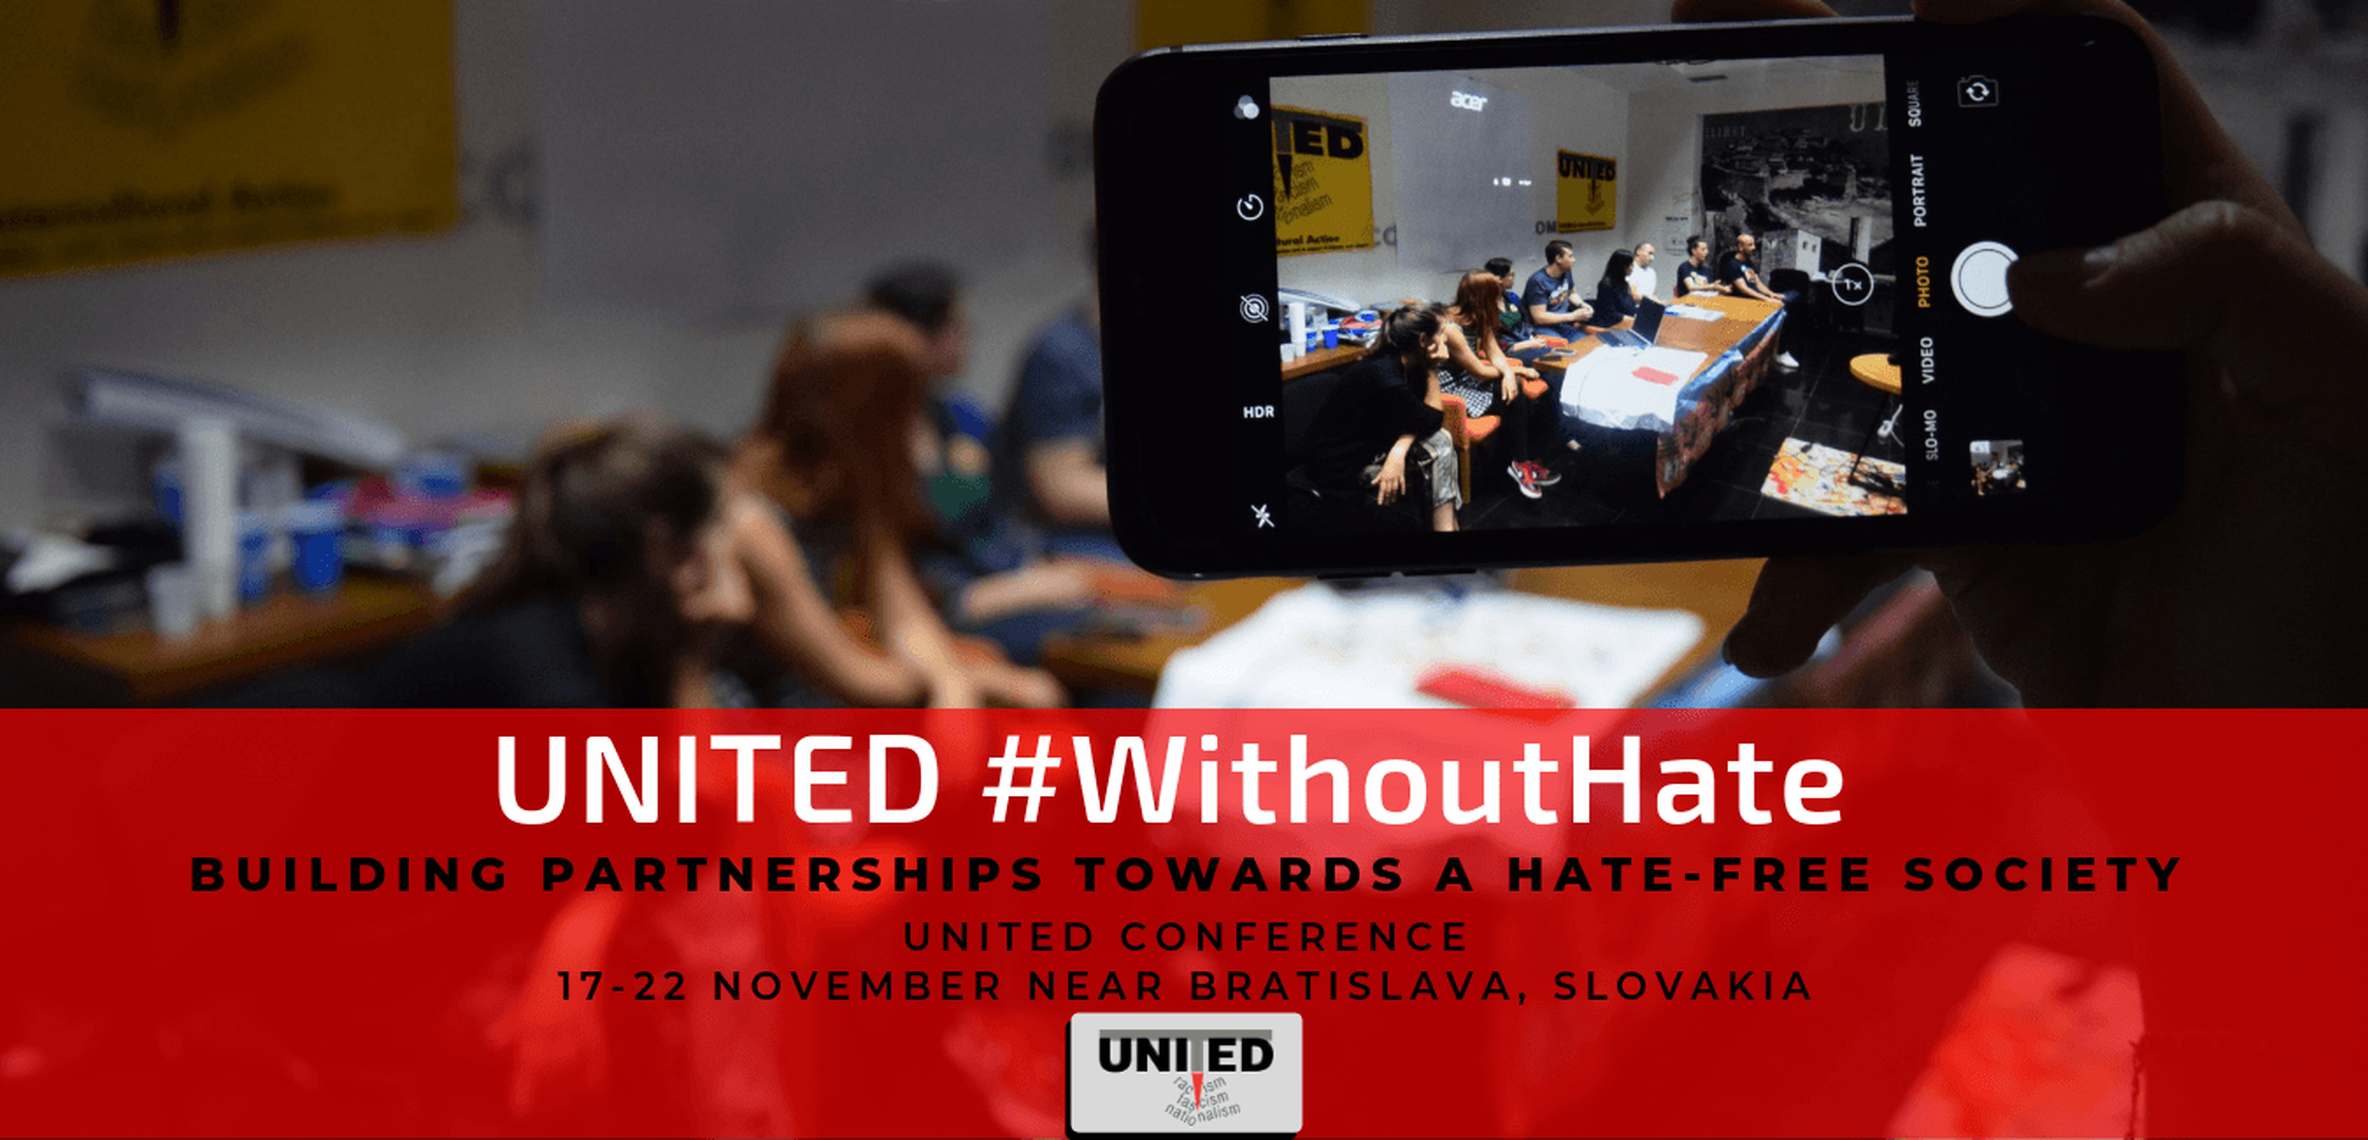 Website image - UNITED #WithoutHate conference